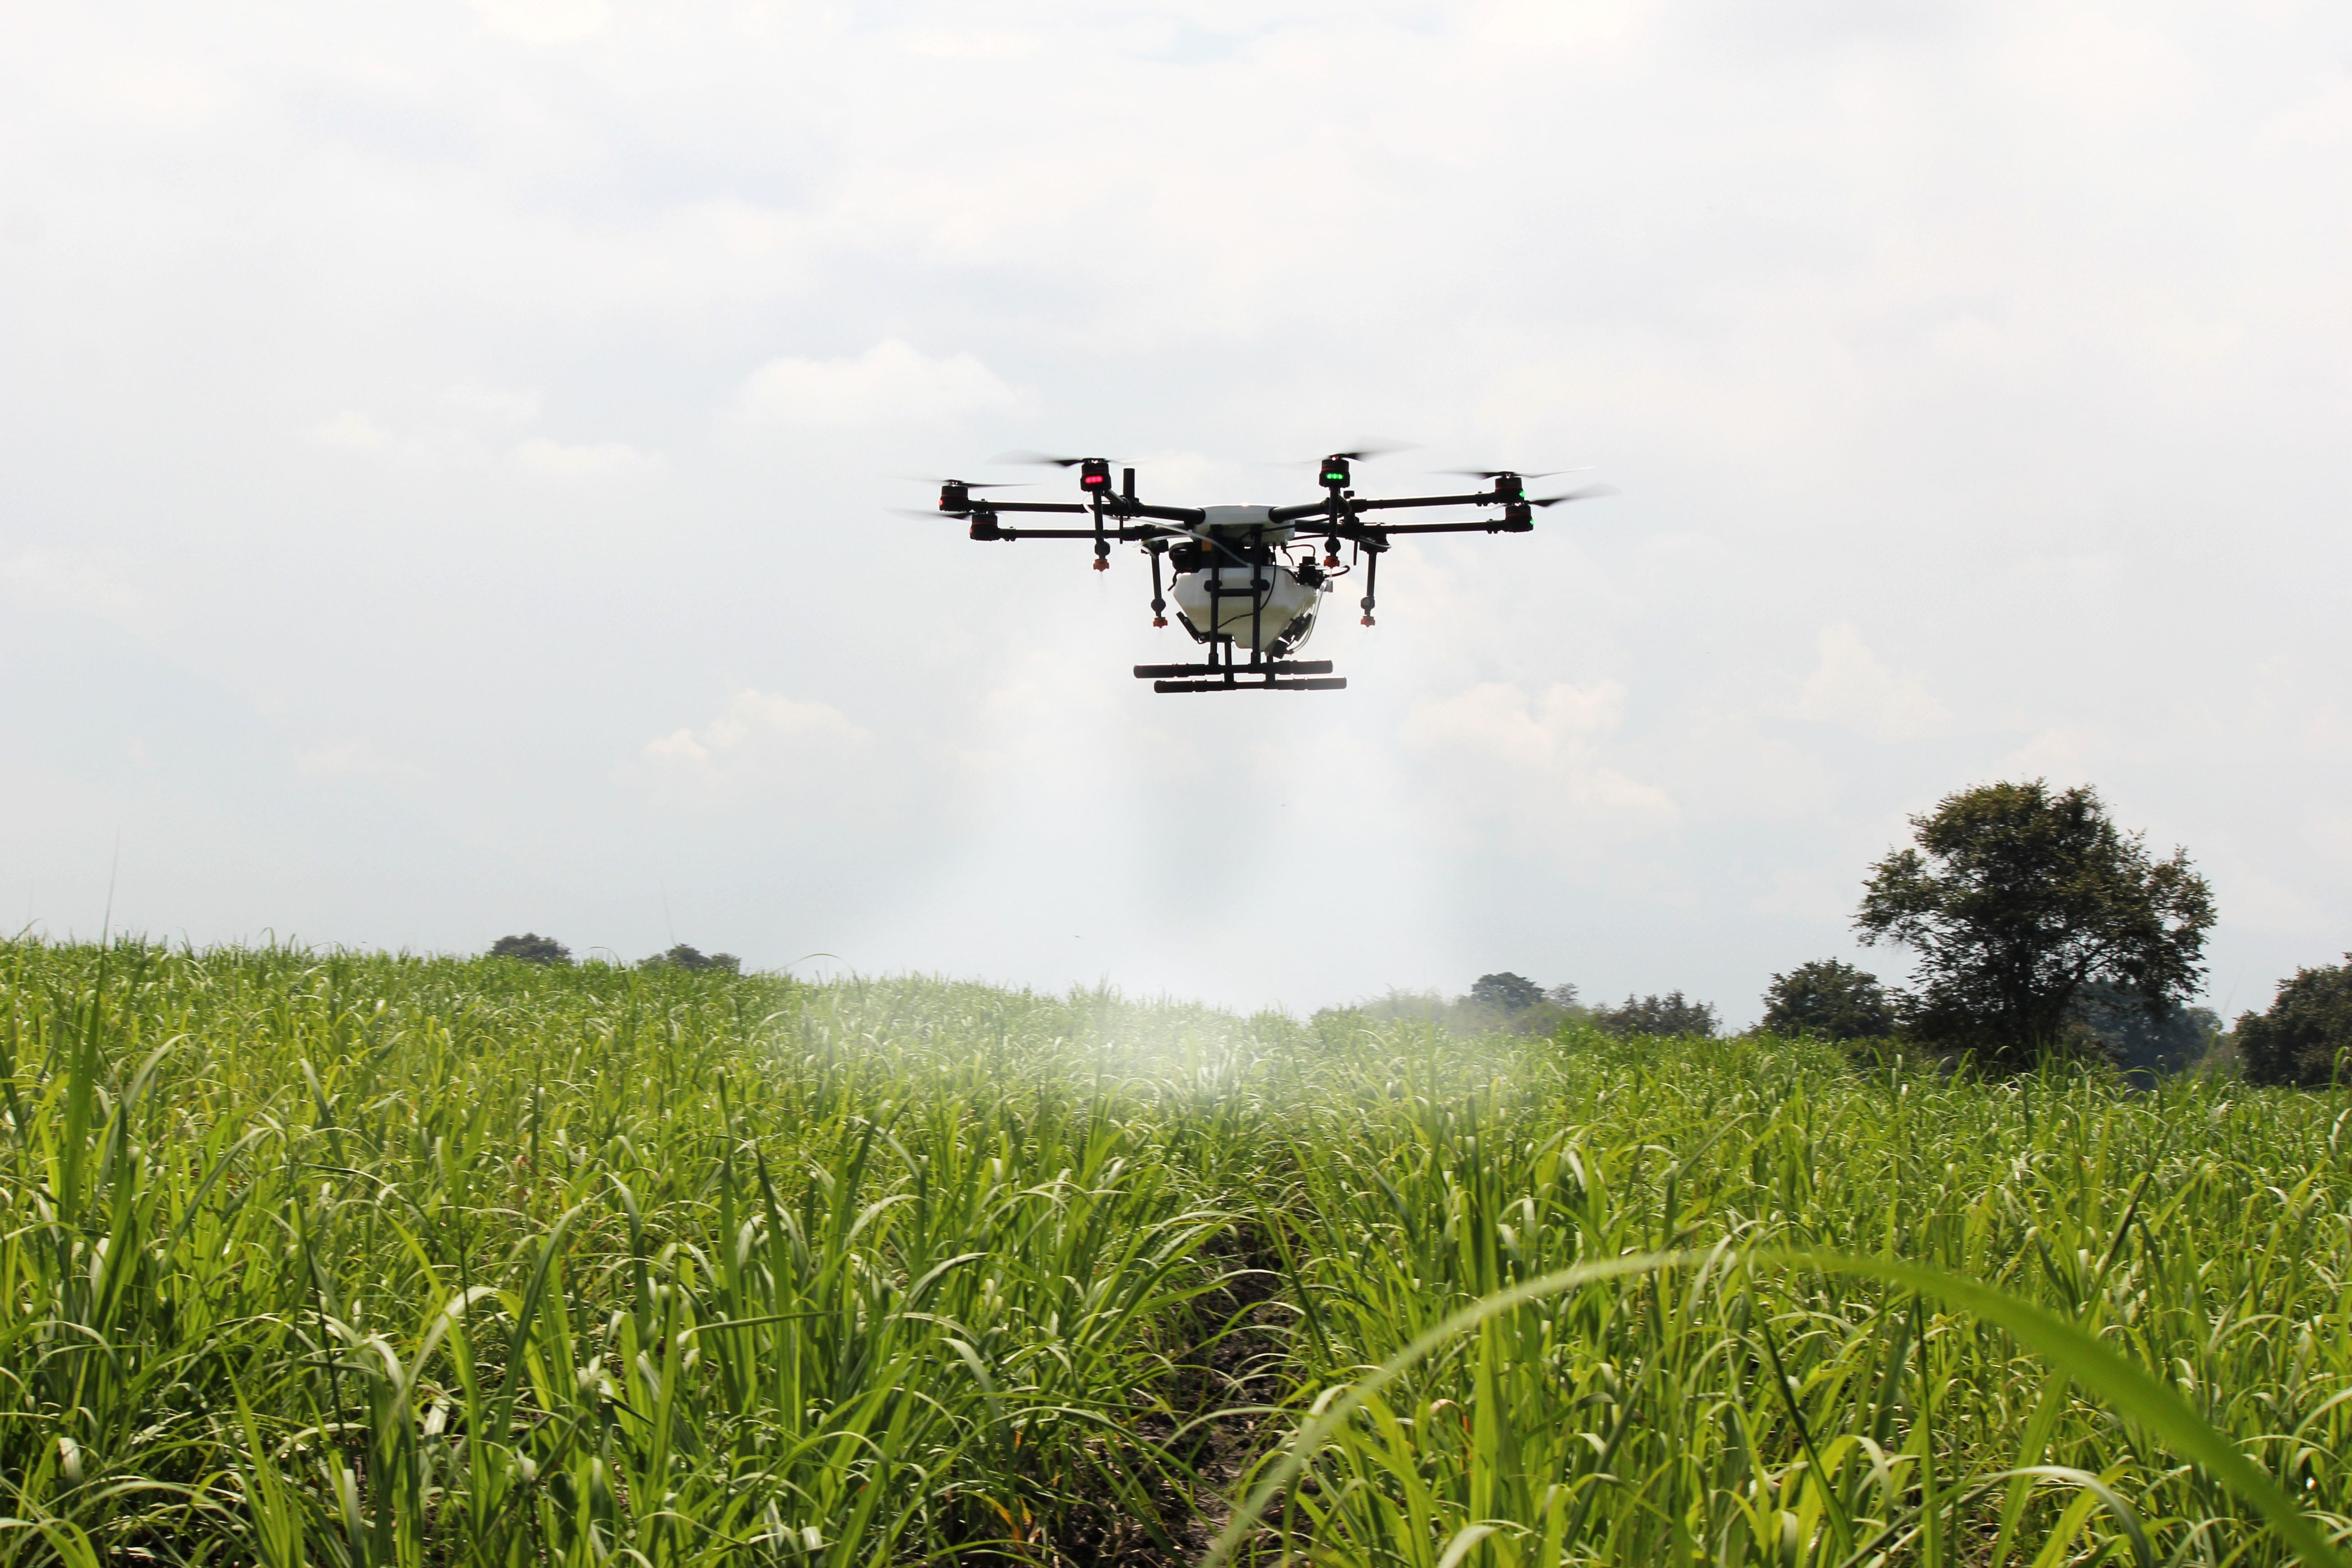 A drone flying above a field of green plants, spraying a white haze.